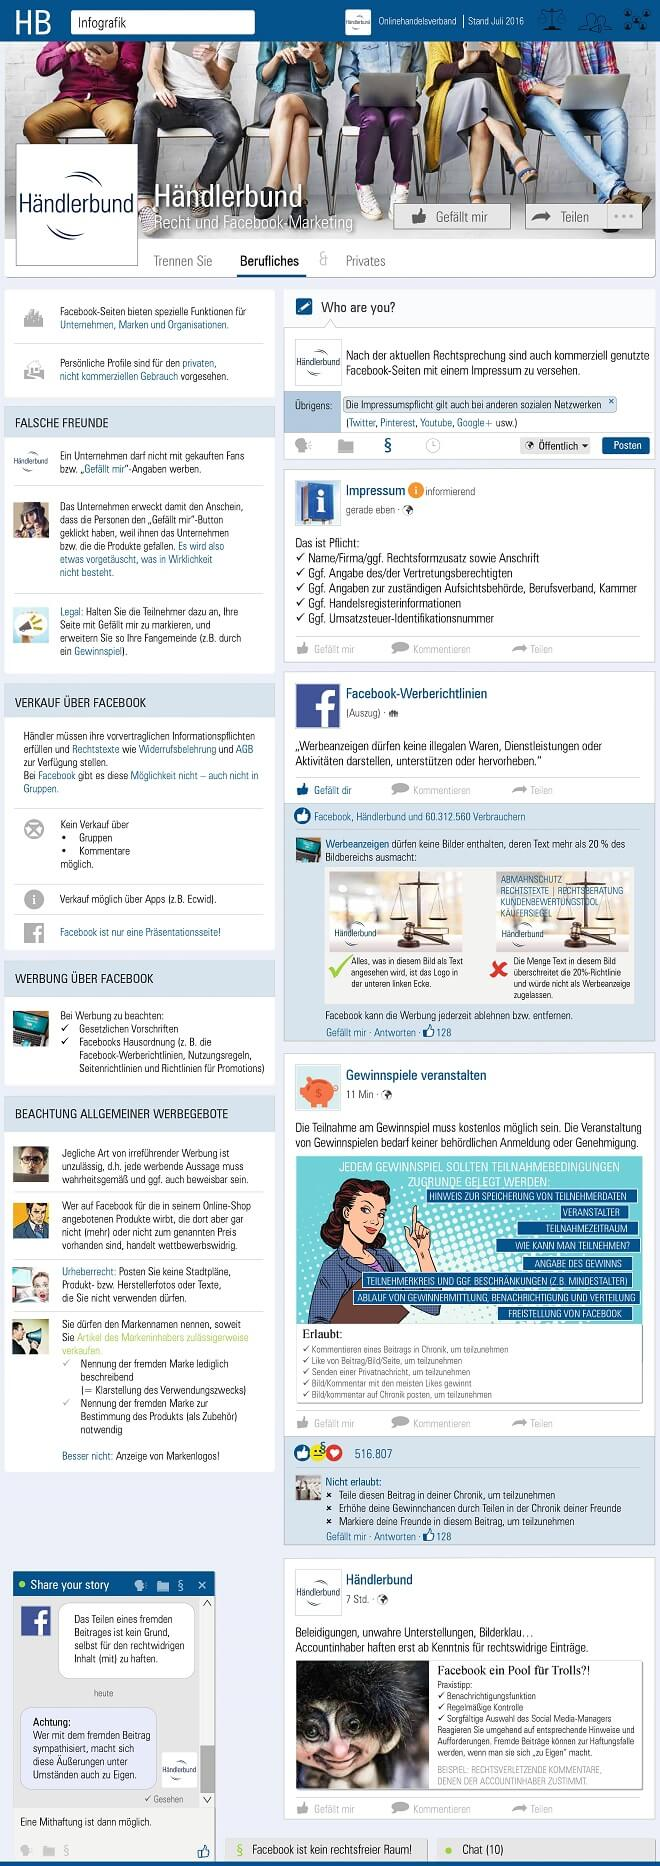 Händlerbund Infografik Recht und Facebook-Marketing